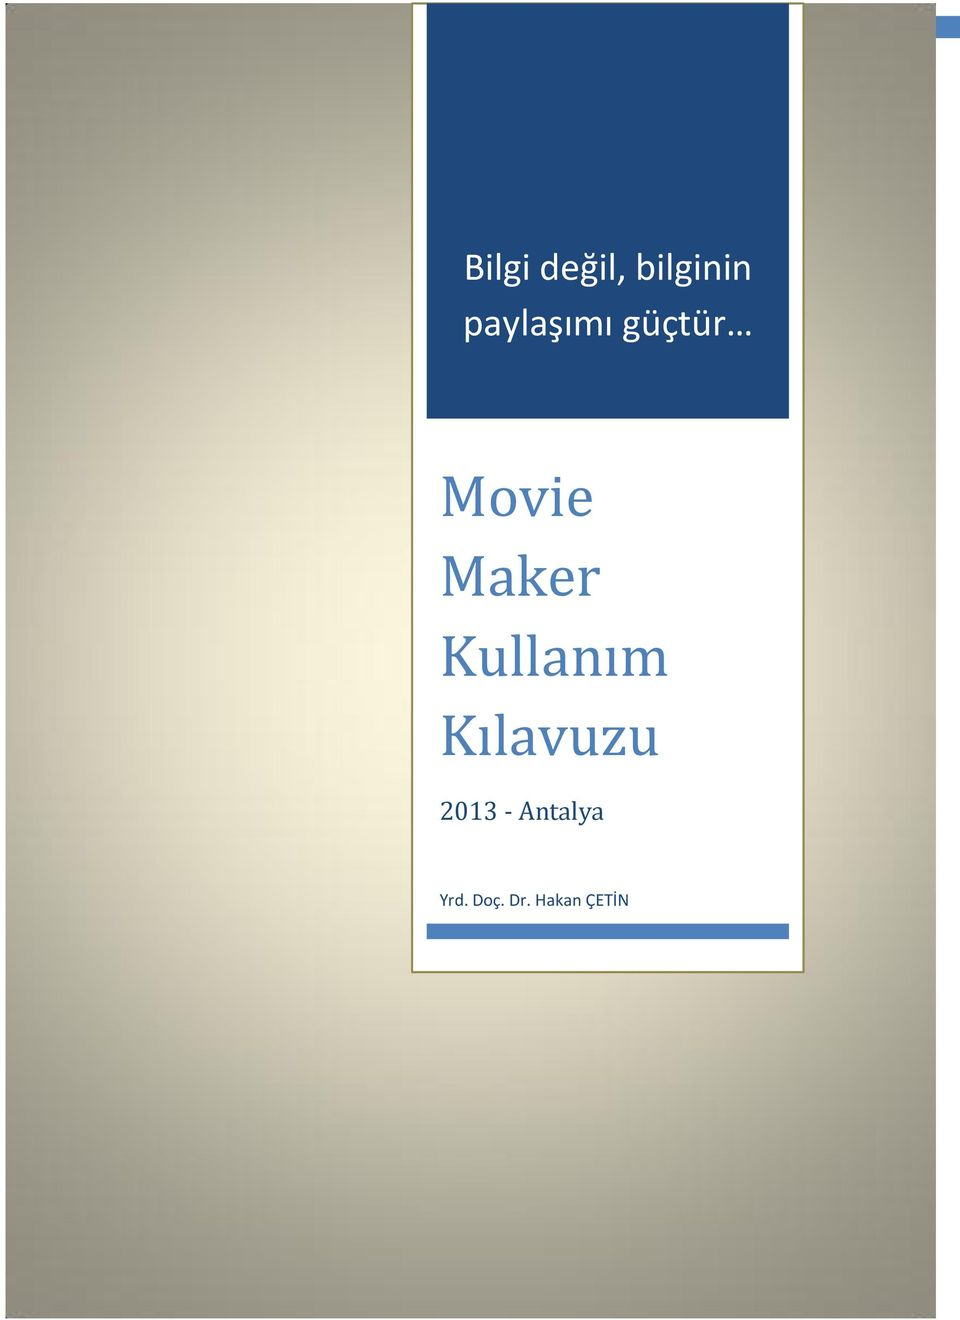 güçtür Movie Maker